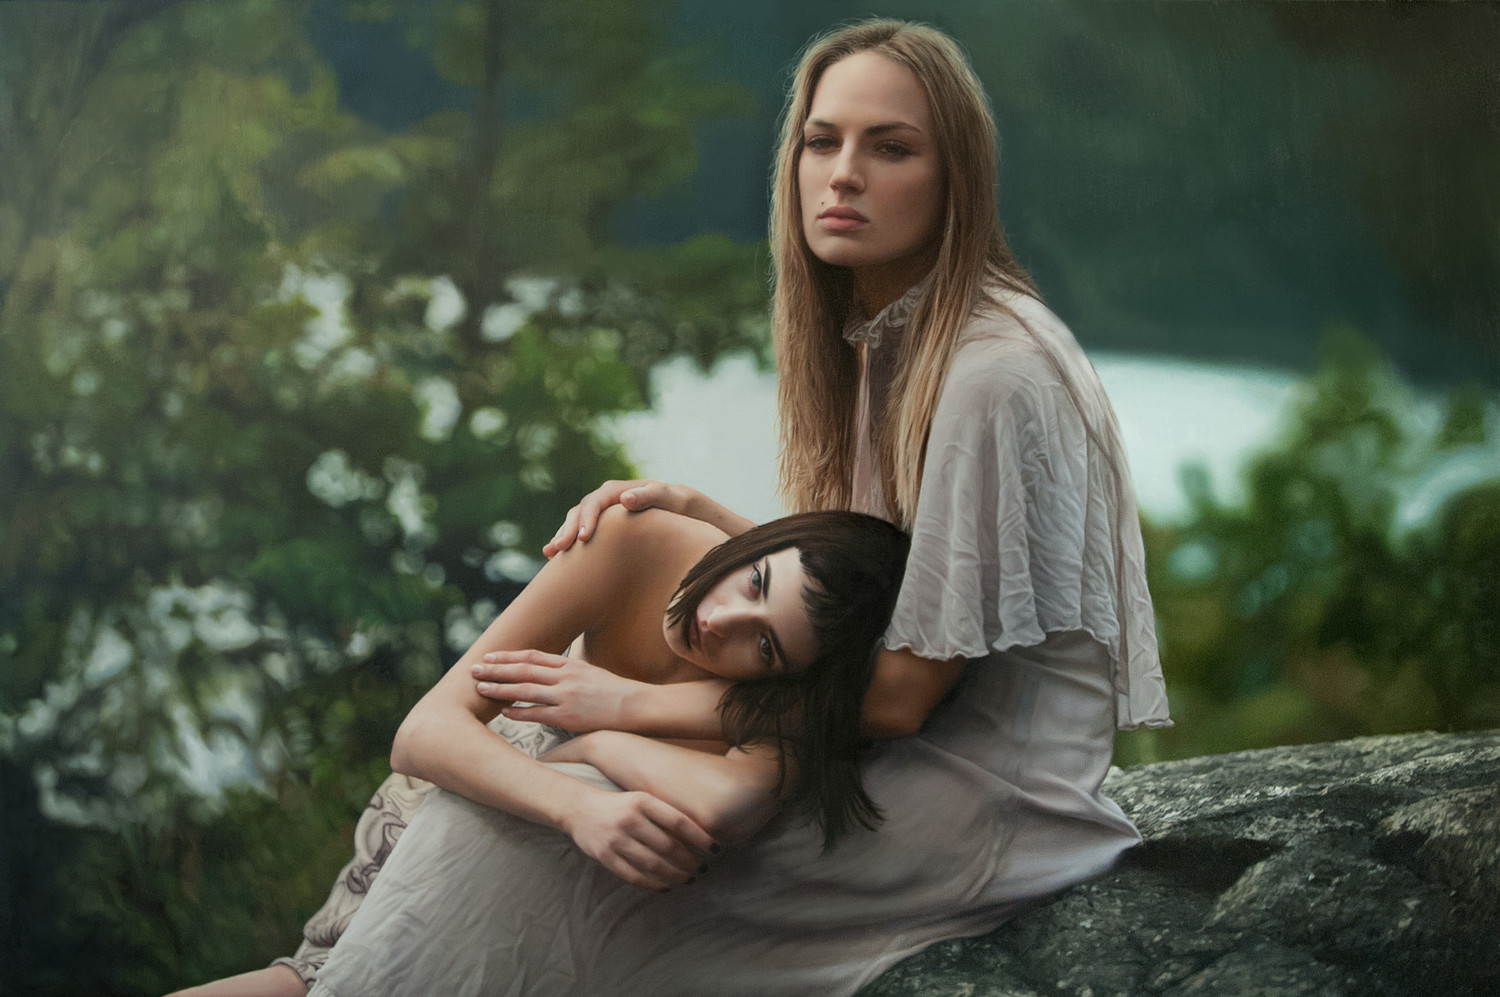 Yigal Ozeri |Hyper Realistic Paintings